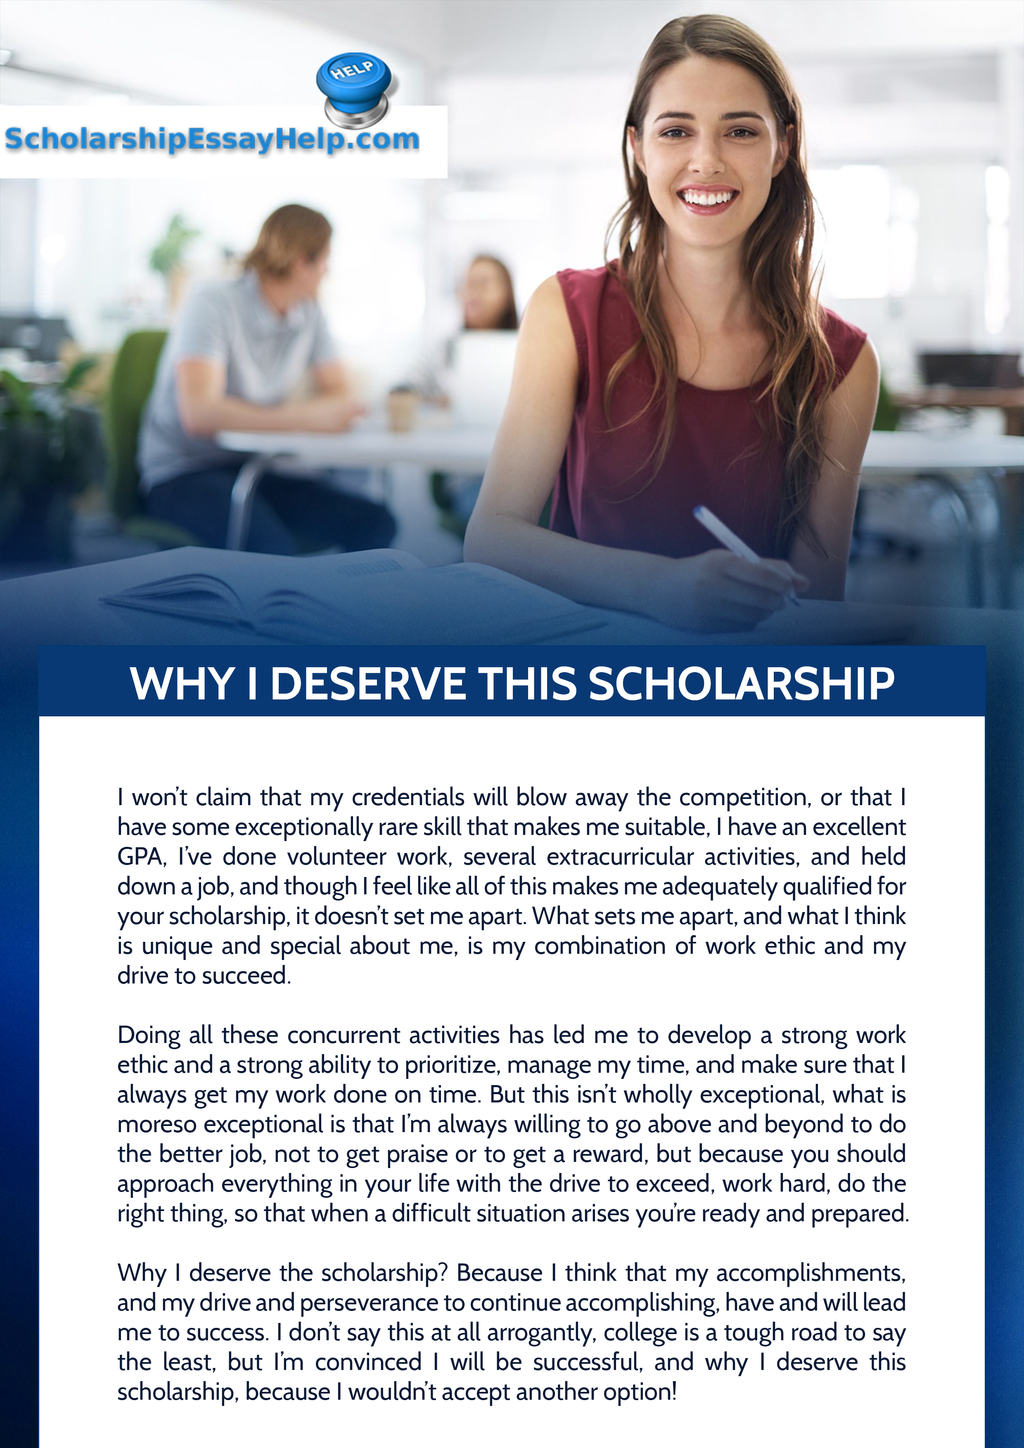 why i deserve this scholarship essay sample by scholarship essay why i deserve this scholarship essay sample by scholarship essay